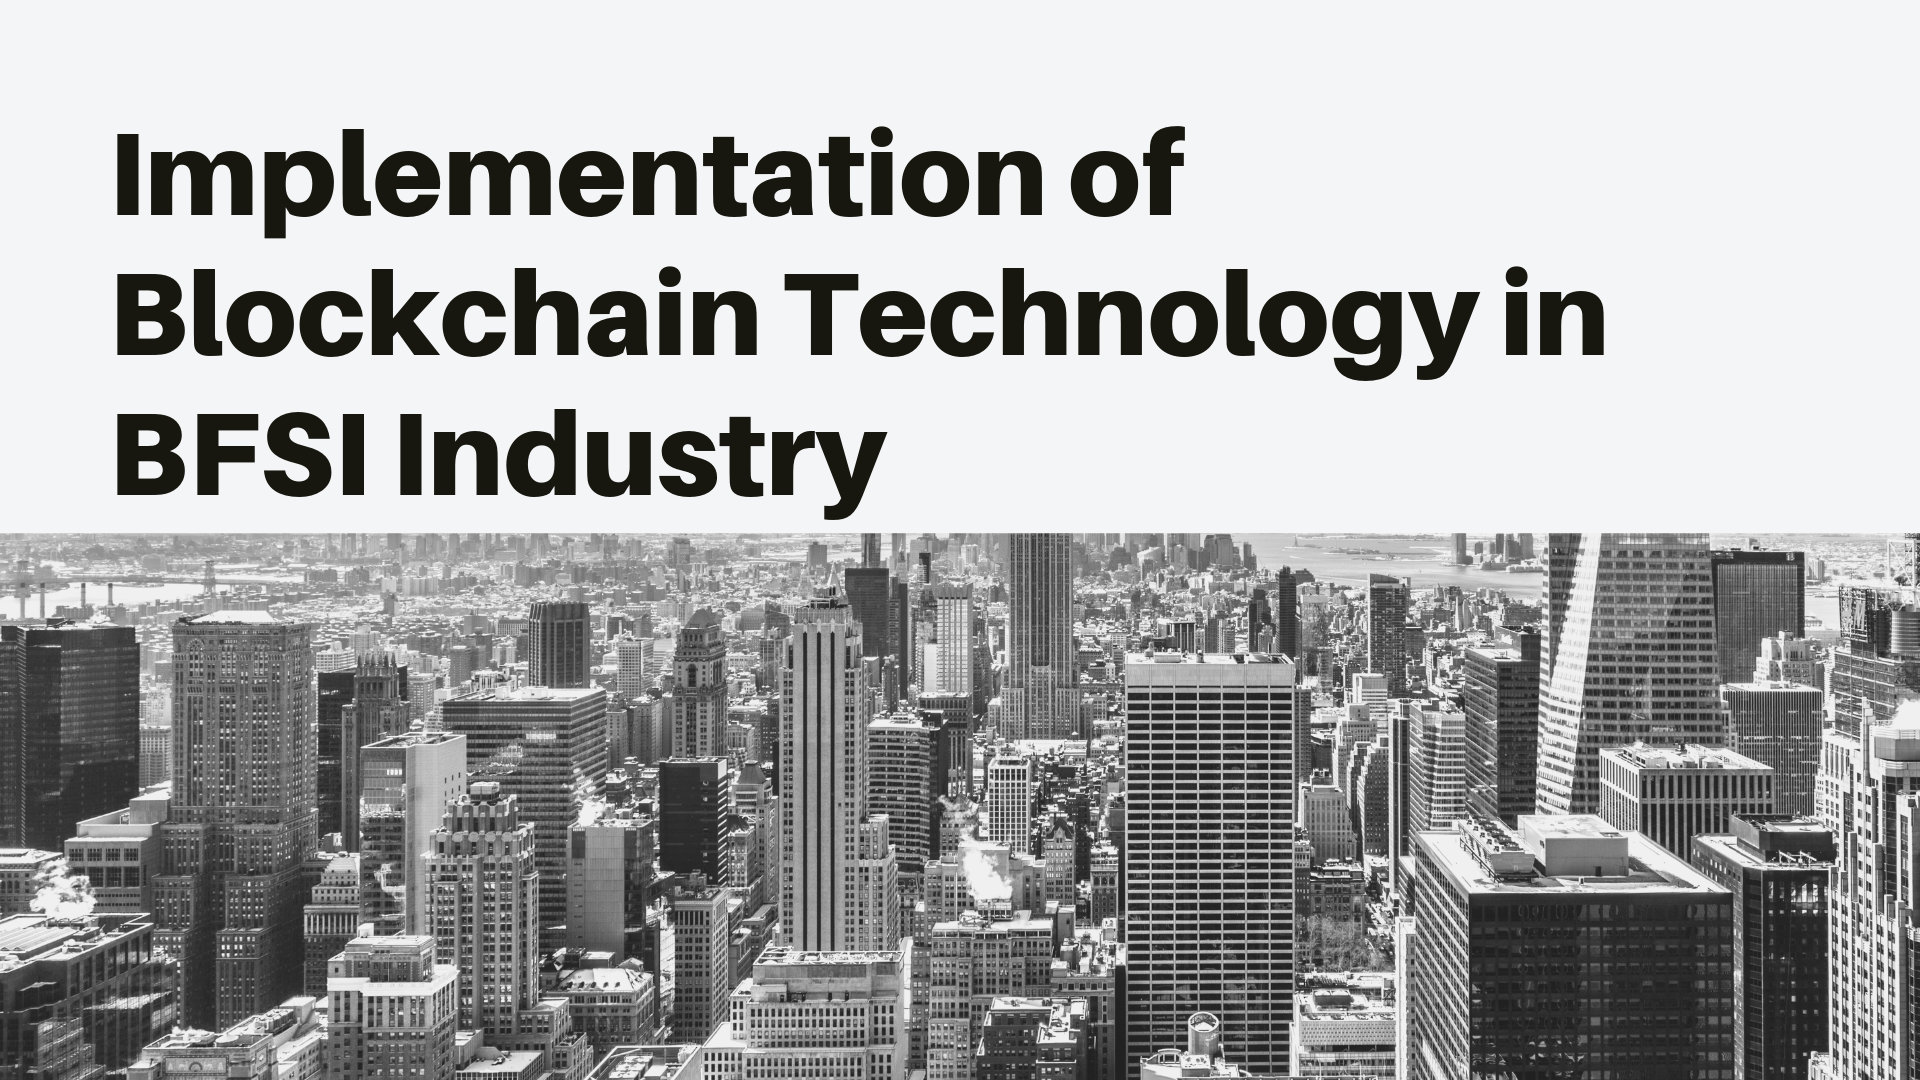 Implementation of Blockchain technology in BFSI industry 1